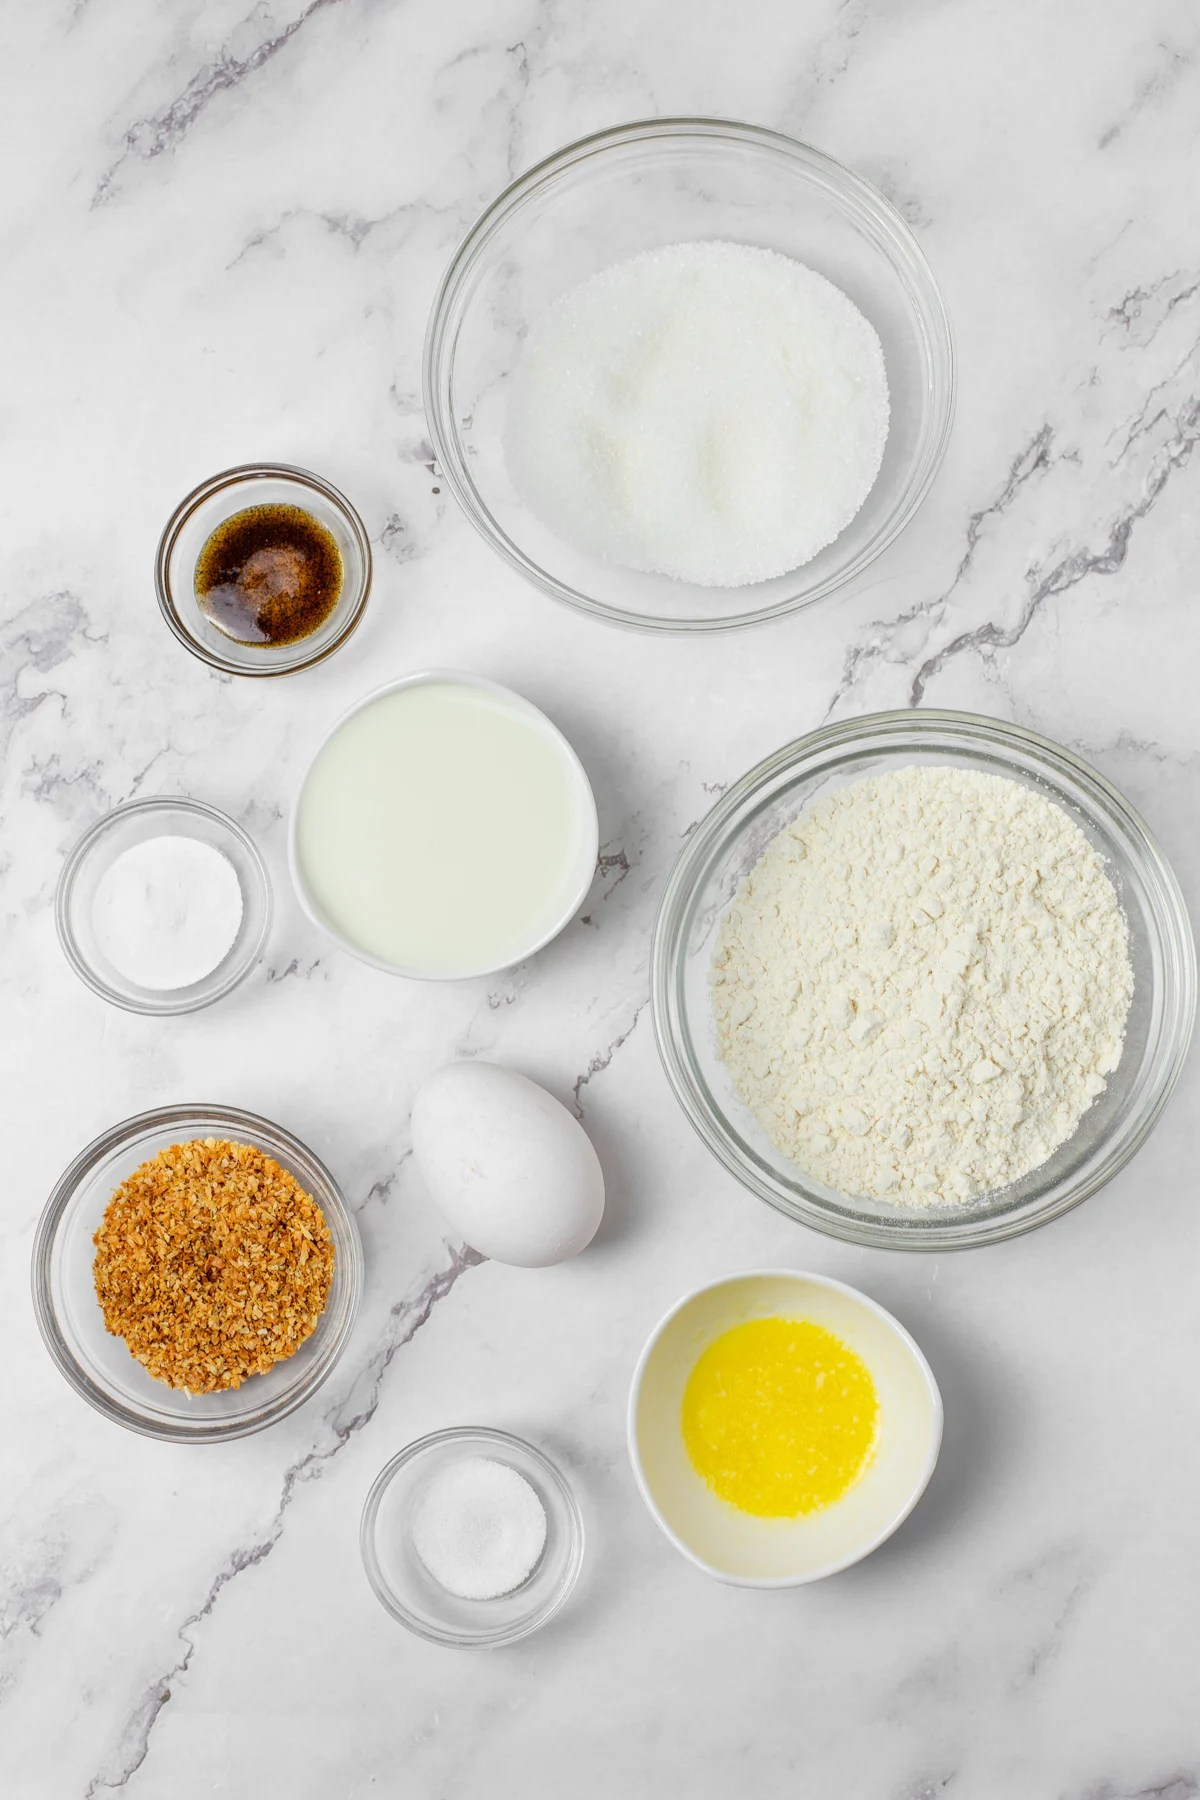 Ingredients needed to make Baked Coconut Donut Holes